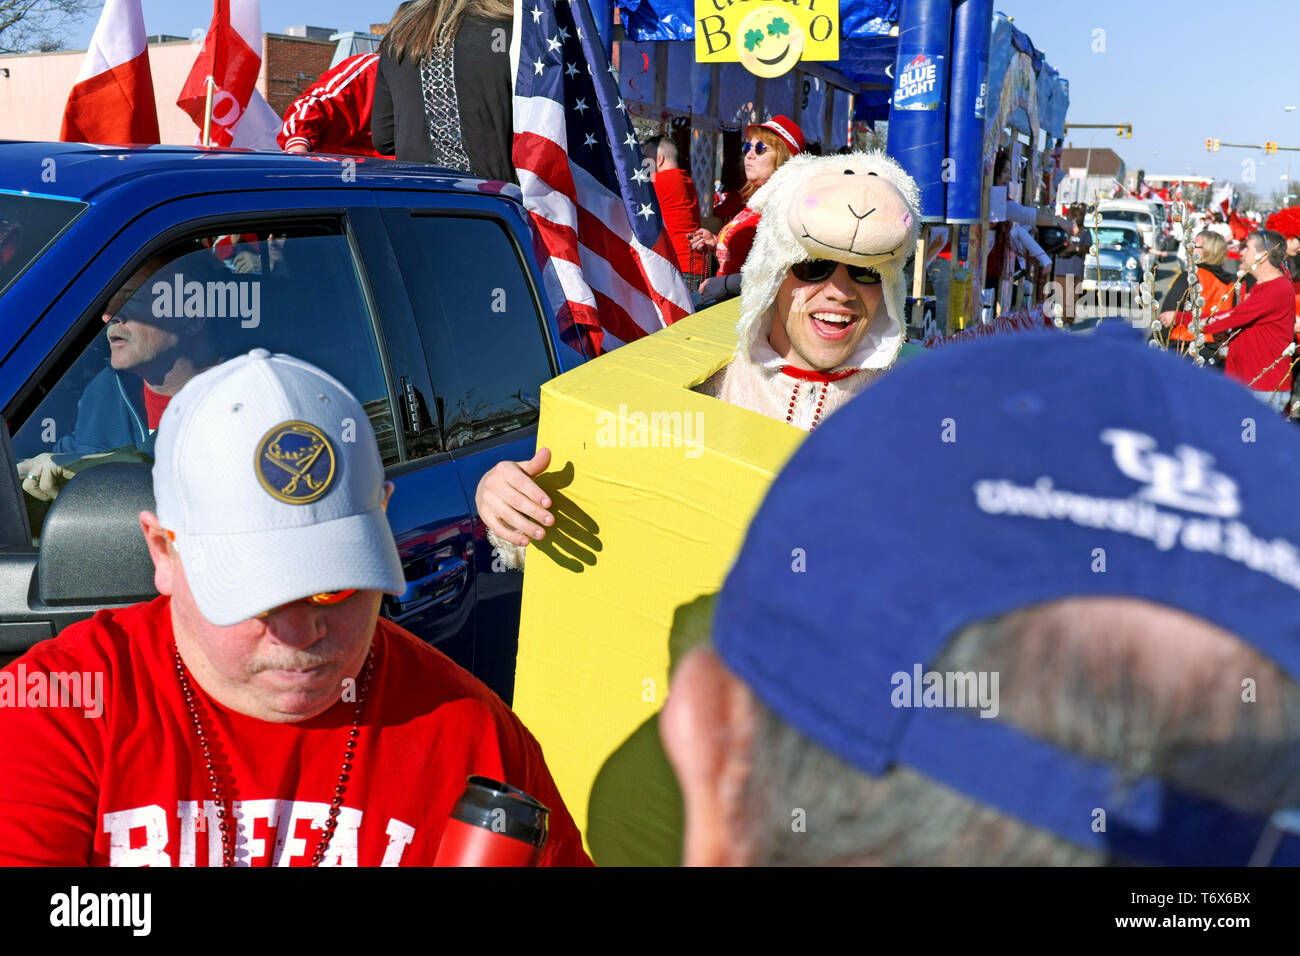 The organized mayhem of the 2019 Dyngus Day Parade in Buffalo, New York, USA is a unique street party celebrating Polish-American pride and traditions - Stock Image